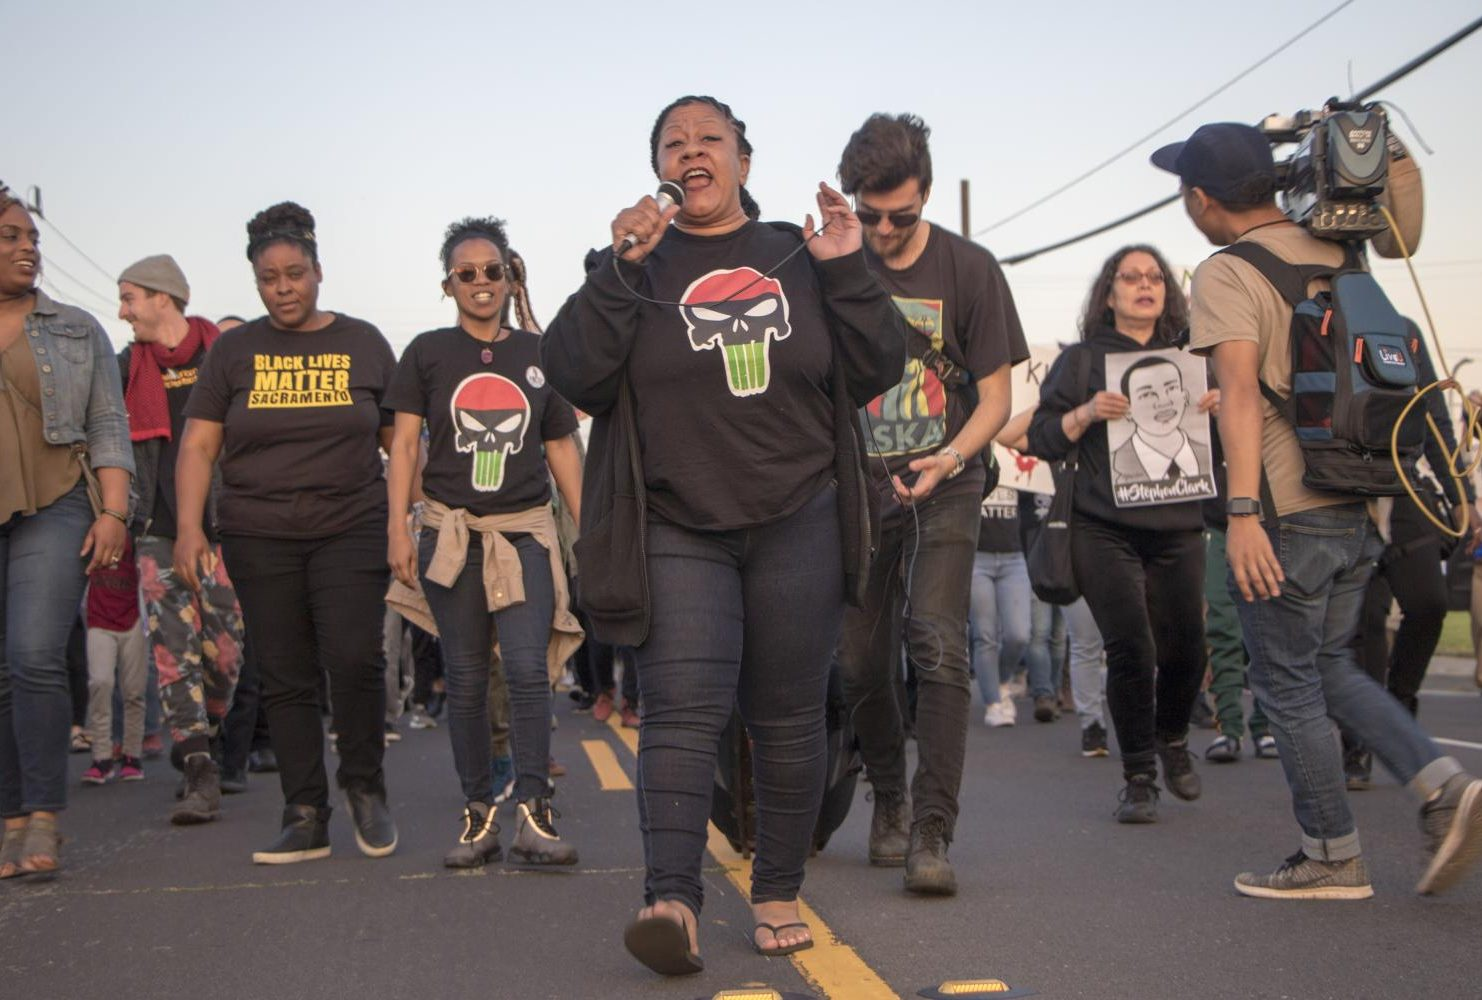 Black Lives Matter Sacramento organizer Tanya Faison leads hundreds of demonstrators down Meadowview Road during the one year anniversary of Stephon Clark's death in South Sacramento, Calif. on March 18, 2019. 22-year-old Clark was fatally shot by two Sacramento police officers in his grandparents' backyard in the South Sacramento neighborhood of Meadowview on March 18, 2018. (Photo by Ashley Hayes-Stone)